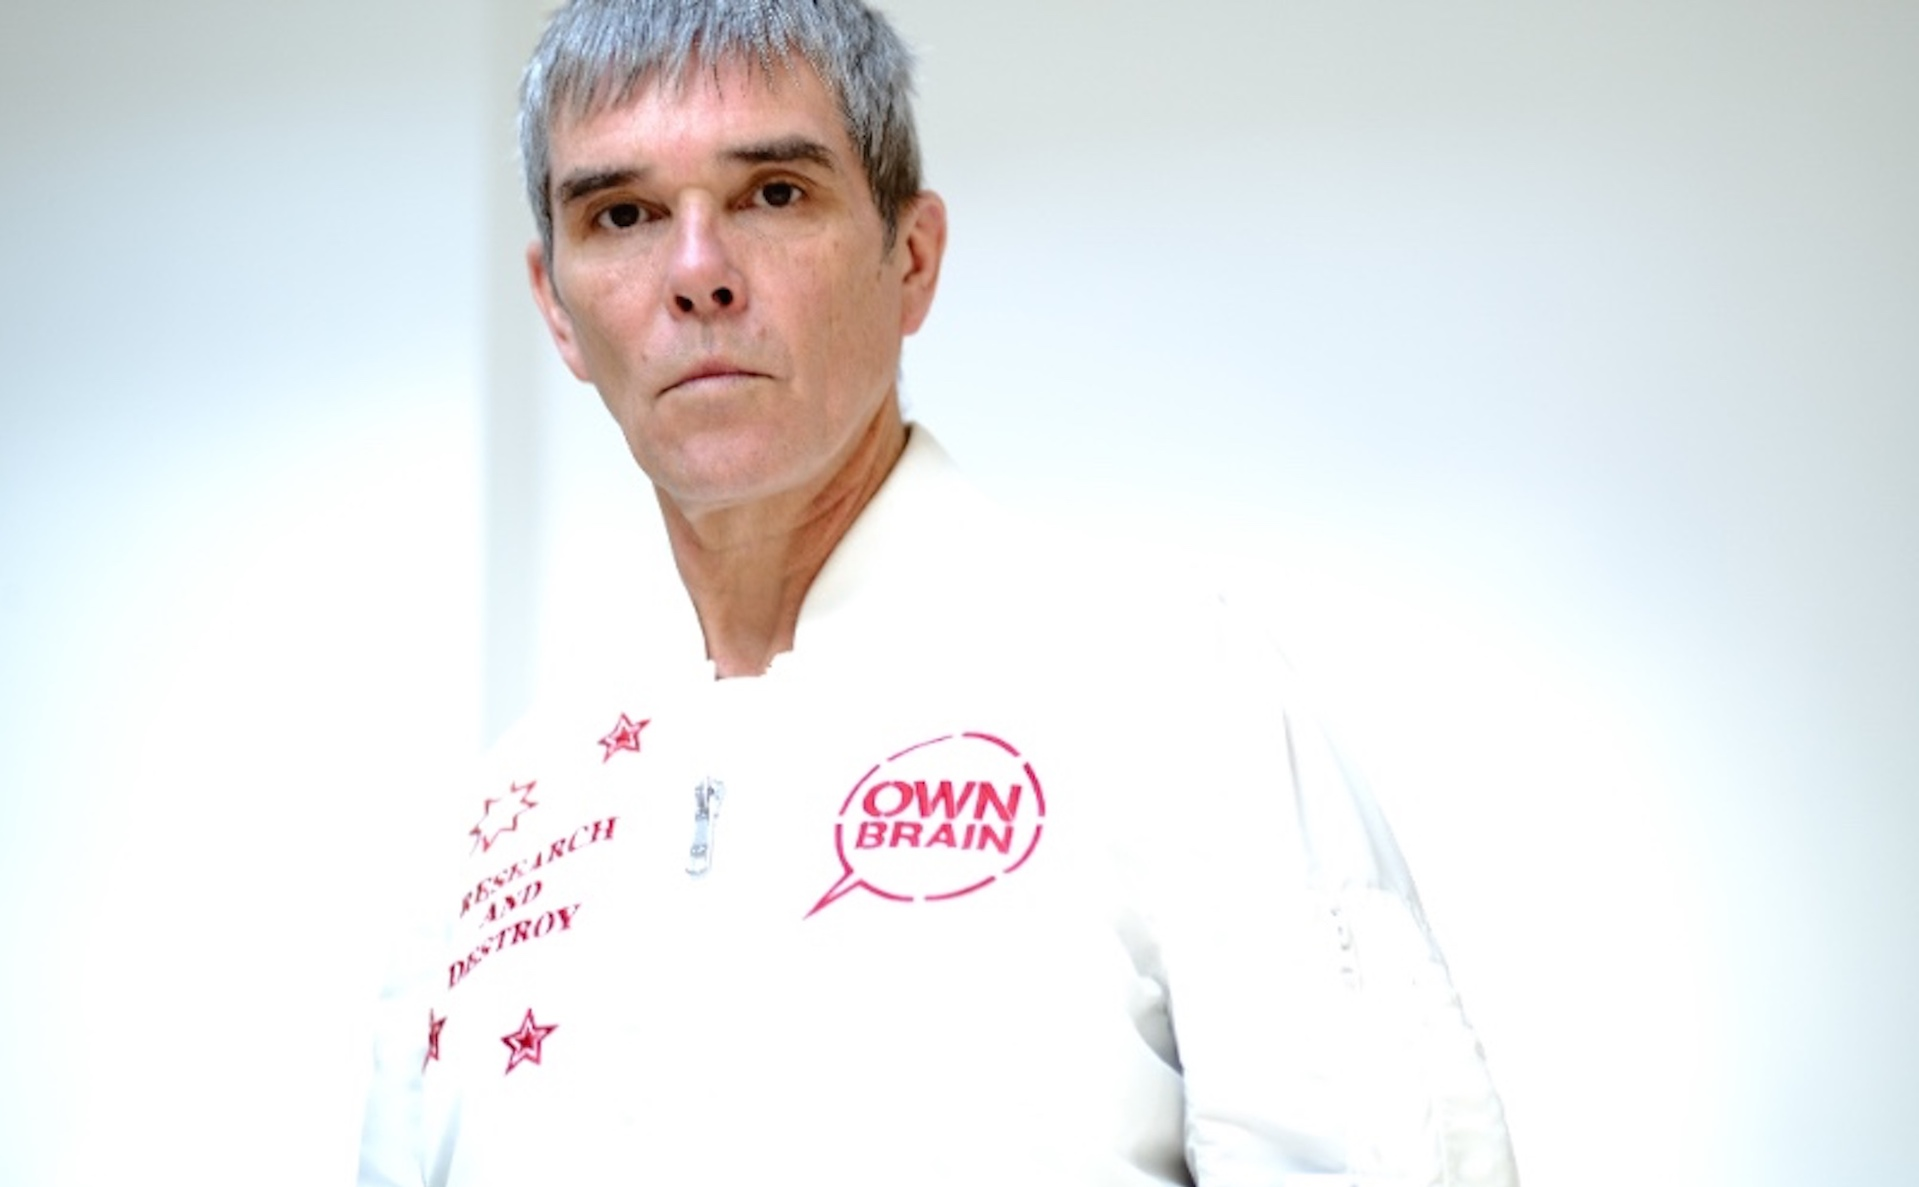 Ian Brown announces Irish Tour including Olympia Theatre show